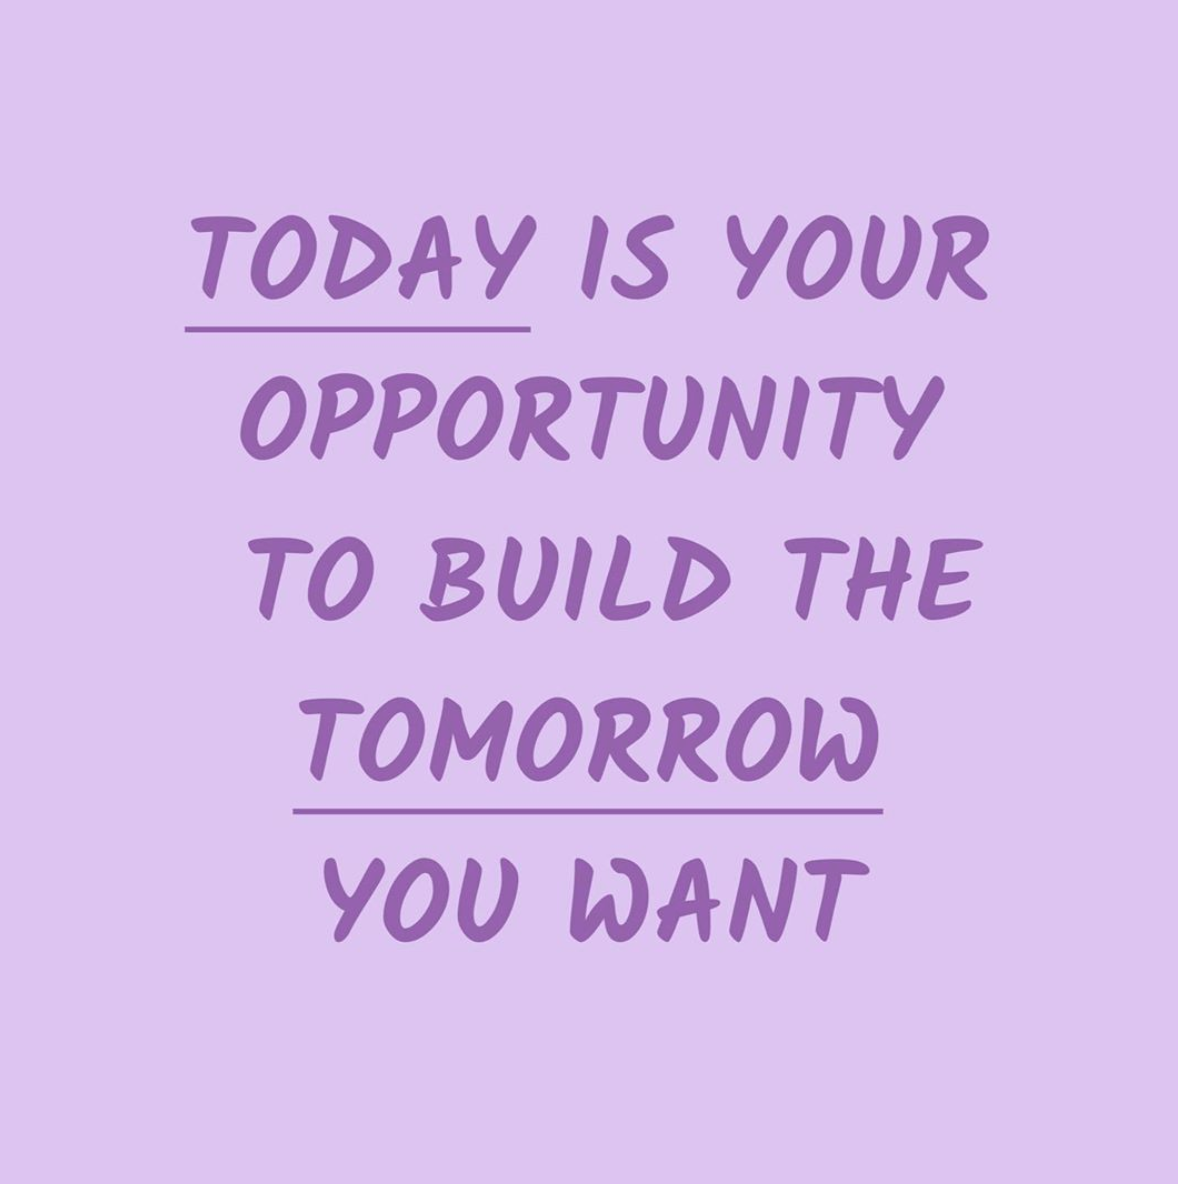 [Image] Today is your opportunity to build the tomorrow you want